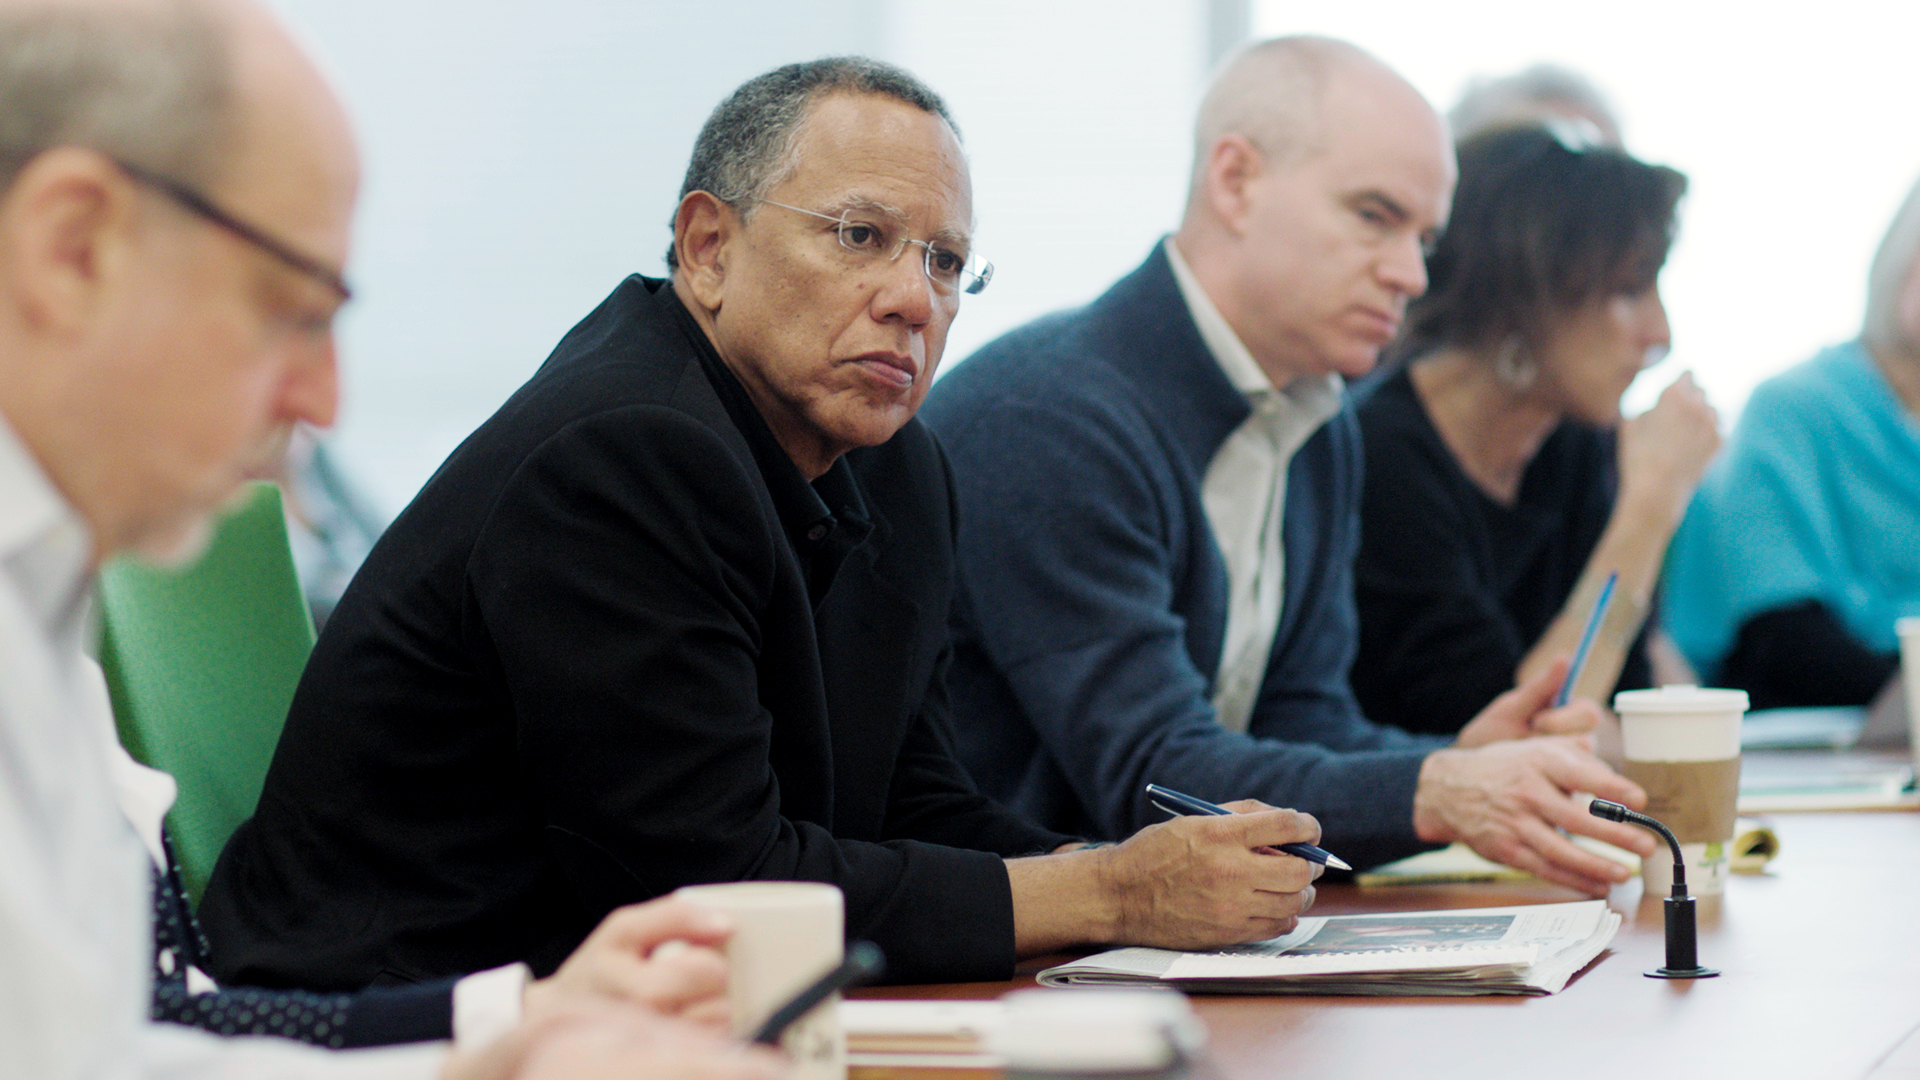 A scene from the SHOWTIME original documentary series THE FOURTH ESTATE (season 1, episode 01). - Photo: Courtesy of SHOWTIME - Photo ID: THEFOURTH_101gr_01.jpg Pictured: Dean Baquet, Executive Editor, oversees the morning meeting at the New York Times in New York, NY.